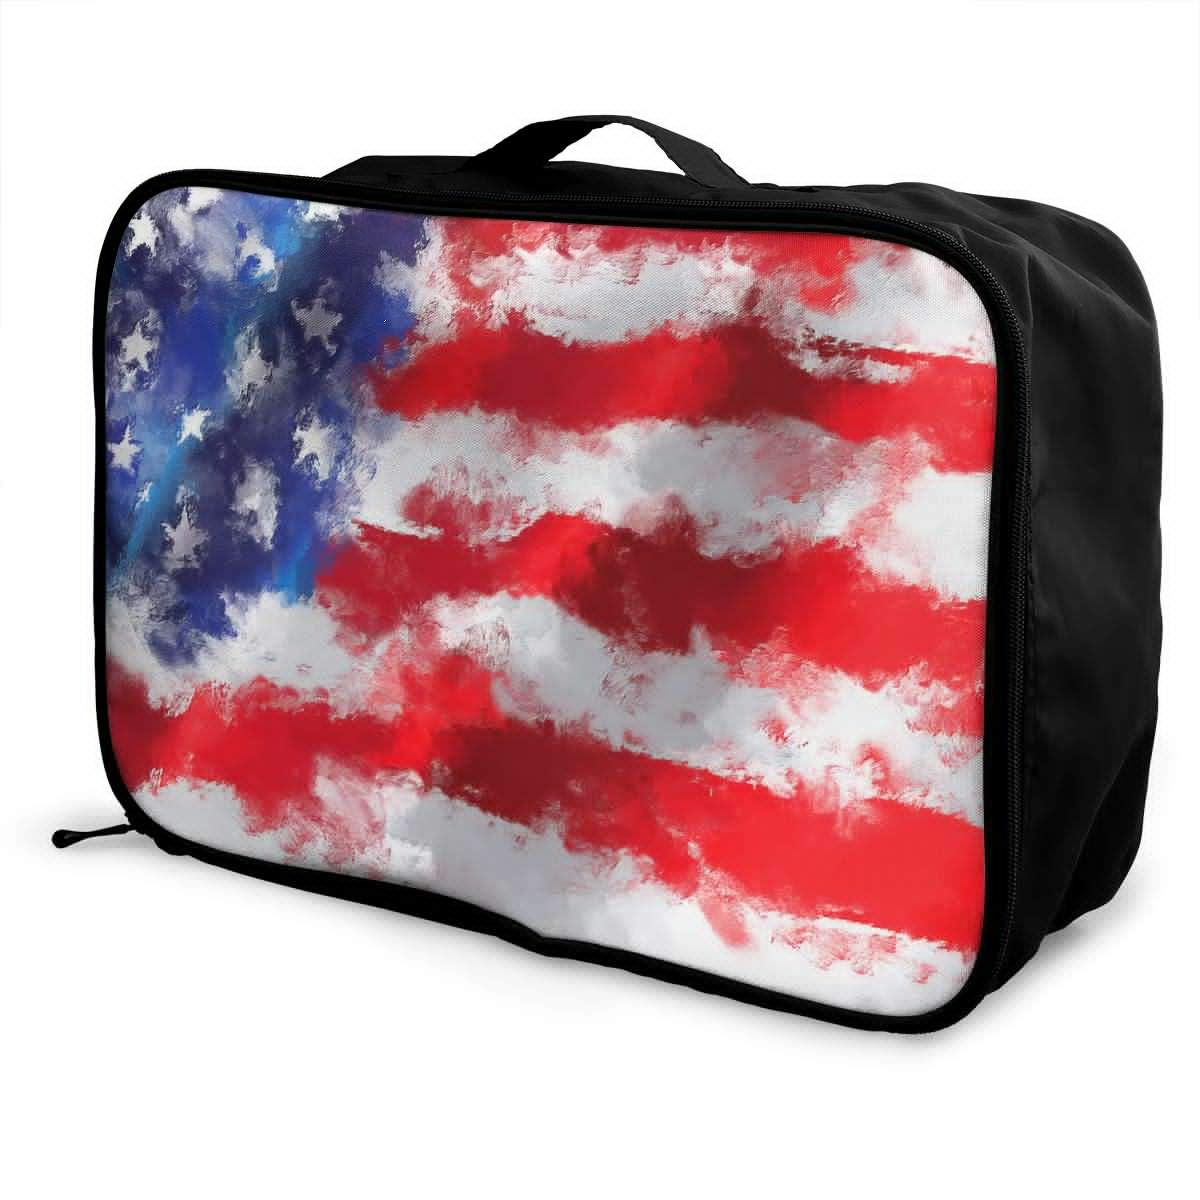 Travel Luggage Duffle Bag Lightweight Portable Handbag National Flag Day Large Capacity Waterproof Foldable Storage Tote